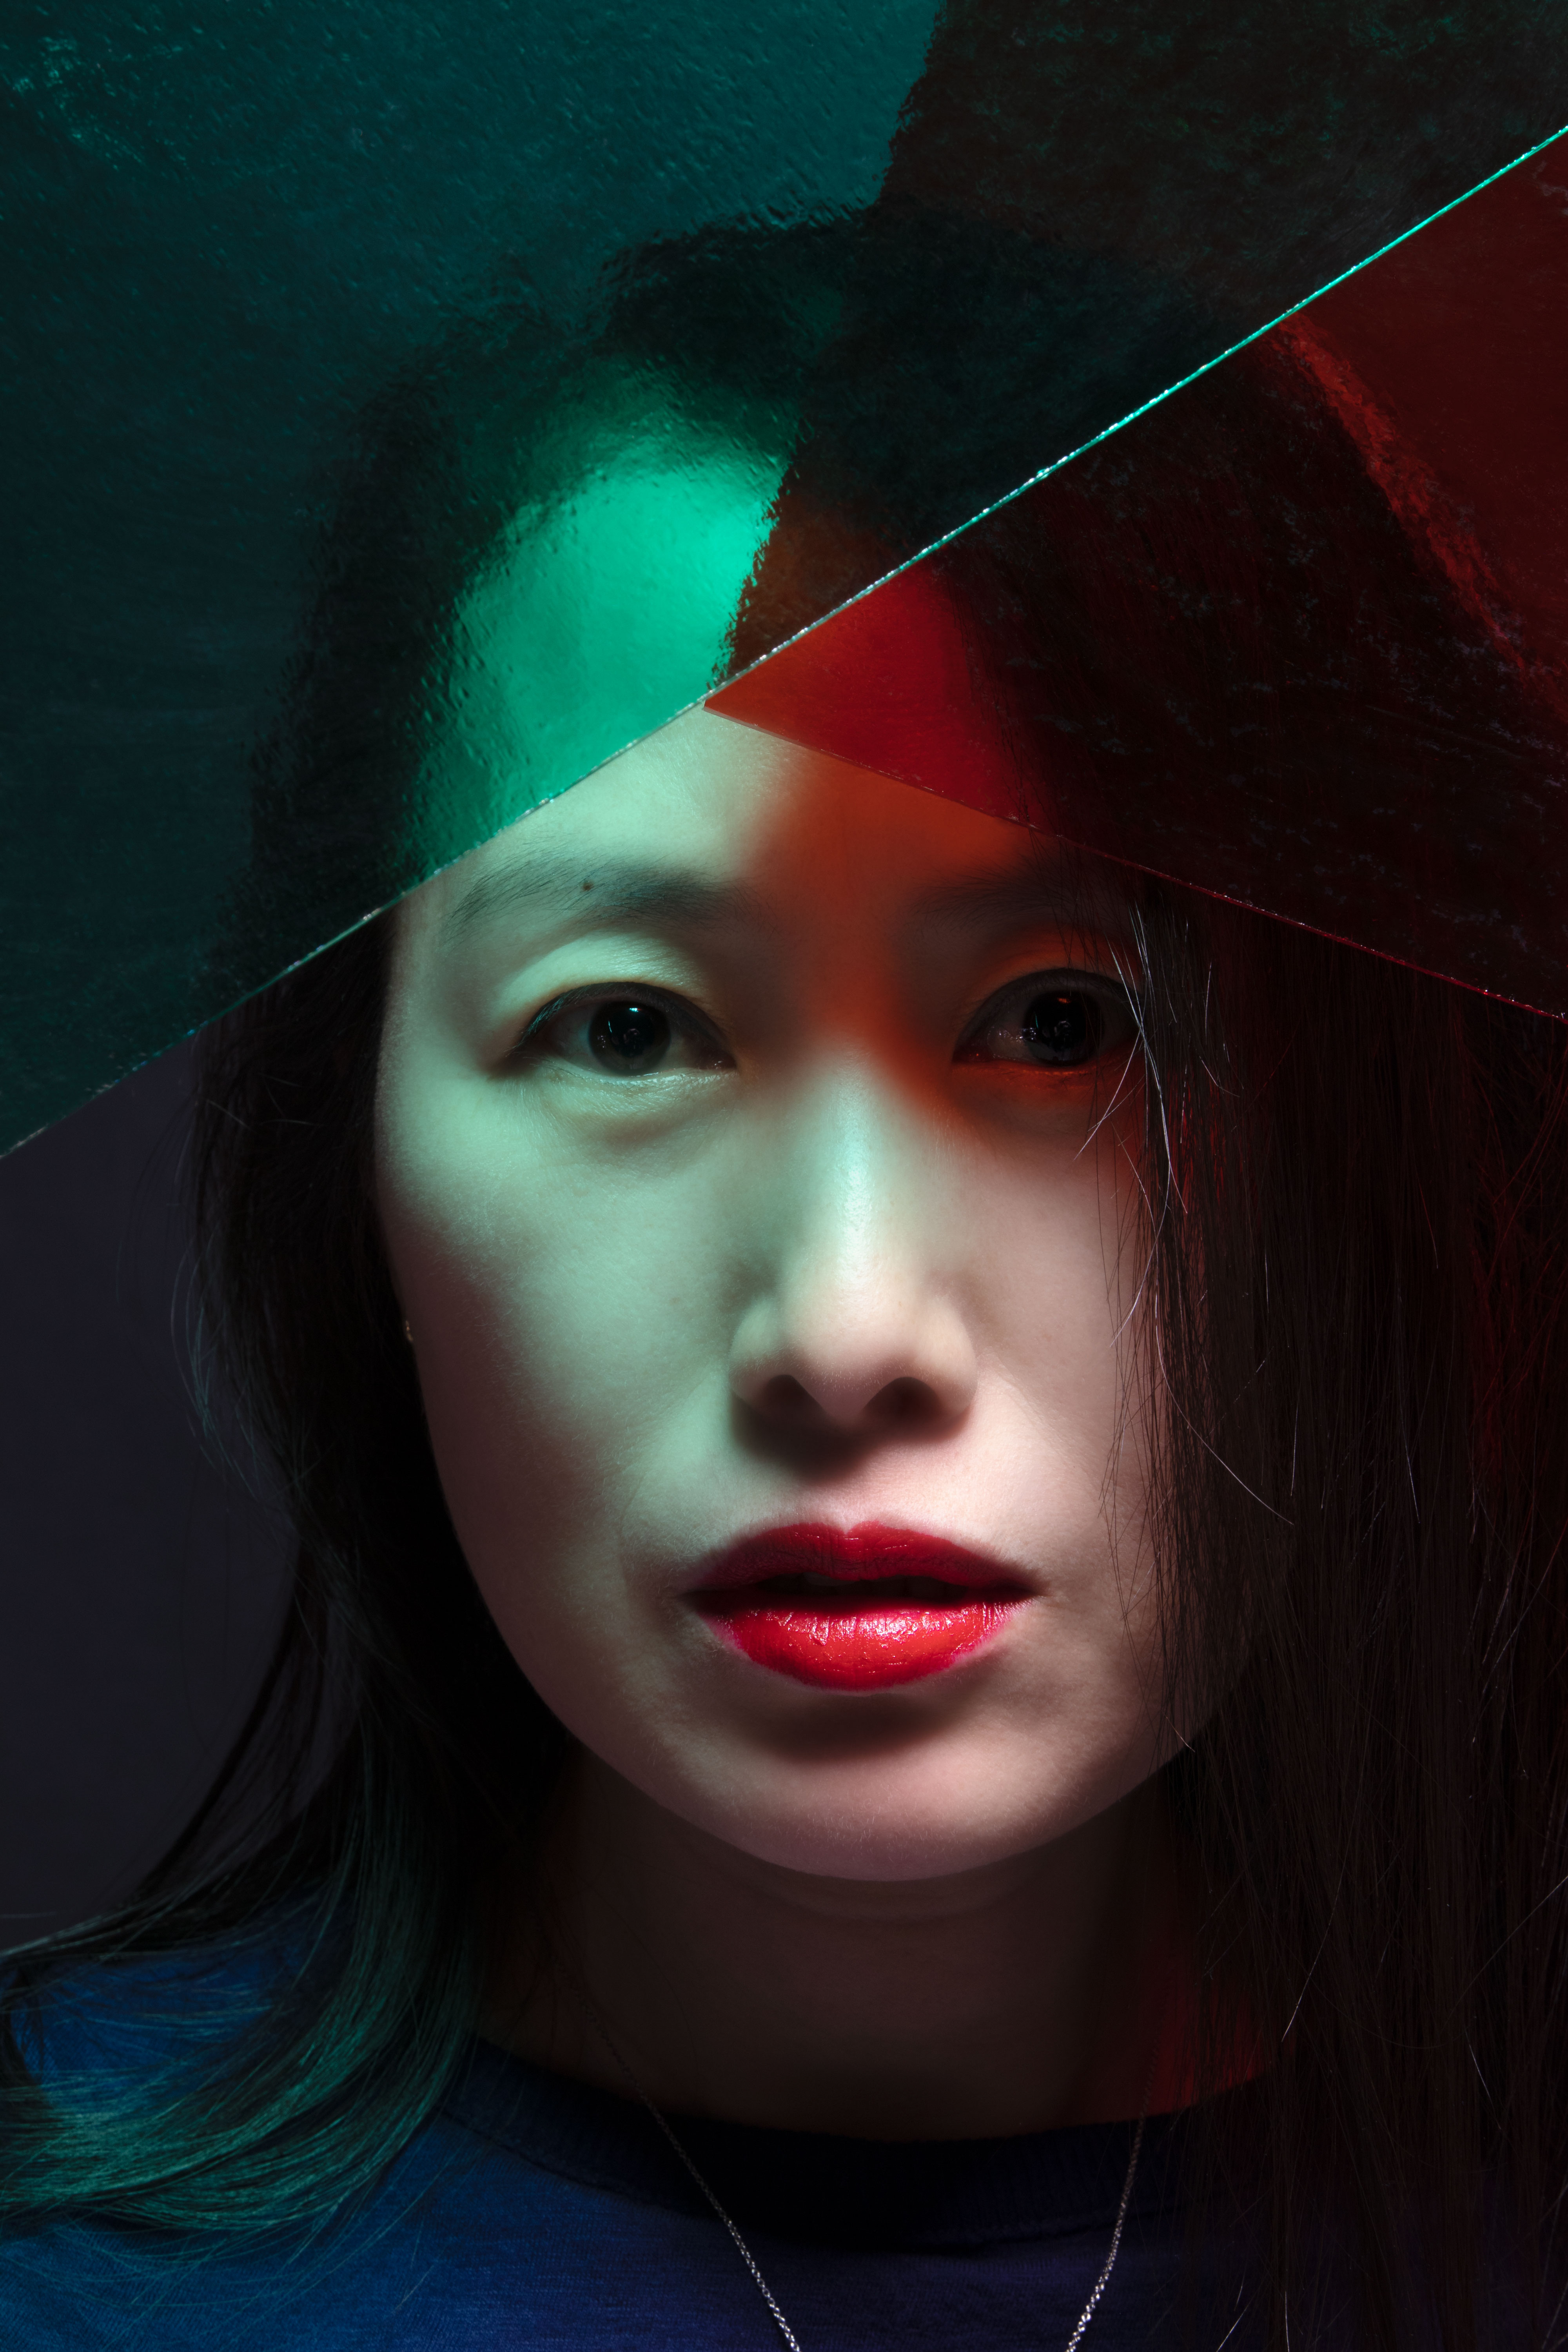 A Korean-American woman with shoulder length straight black hair wearing only red lipstick with a navy shirt and silver necklace stares straight into the camera past planes of pale green and rich red glass angled to a point above her eyes.